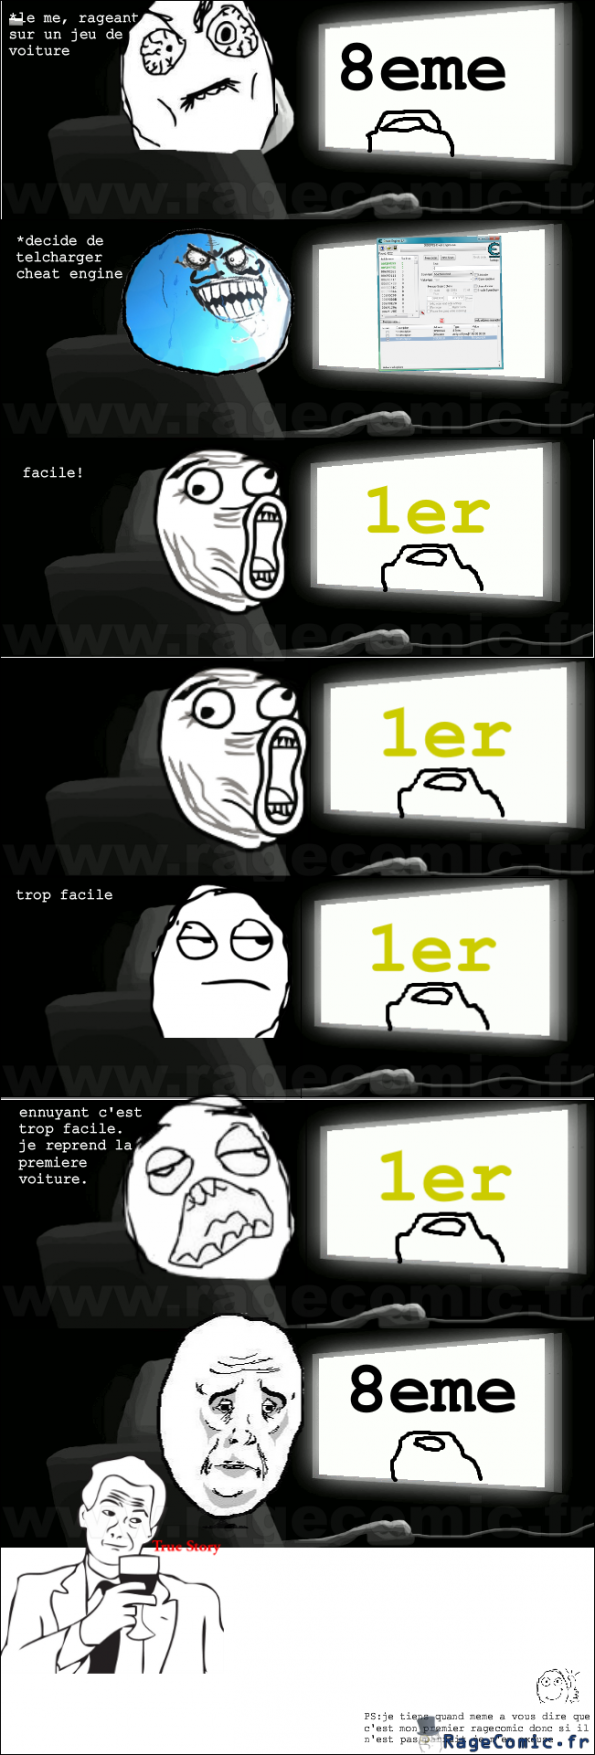 quand je joue un jeu de voiture okay guy rage comics francais troll face. Black Bedroom Furniture Sets. Home Design Ideas